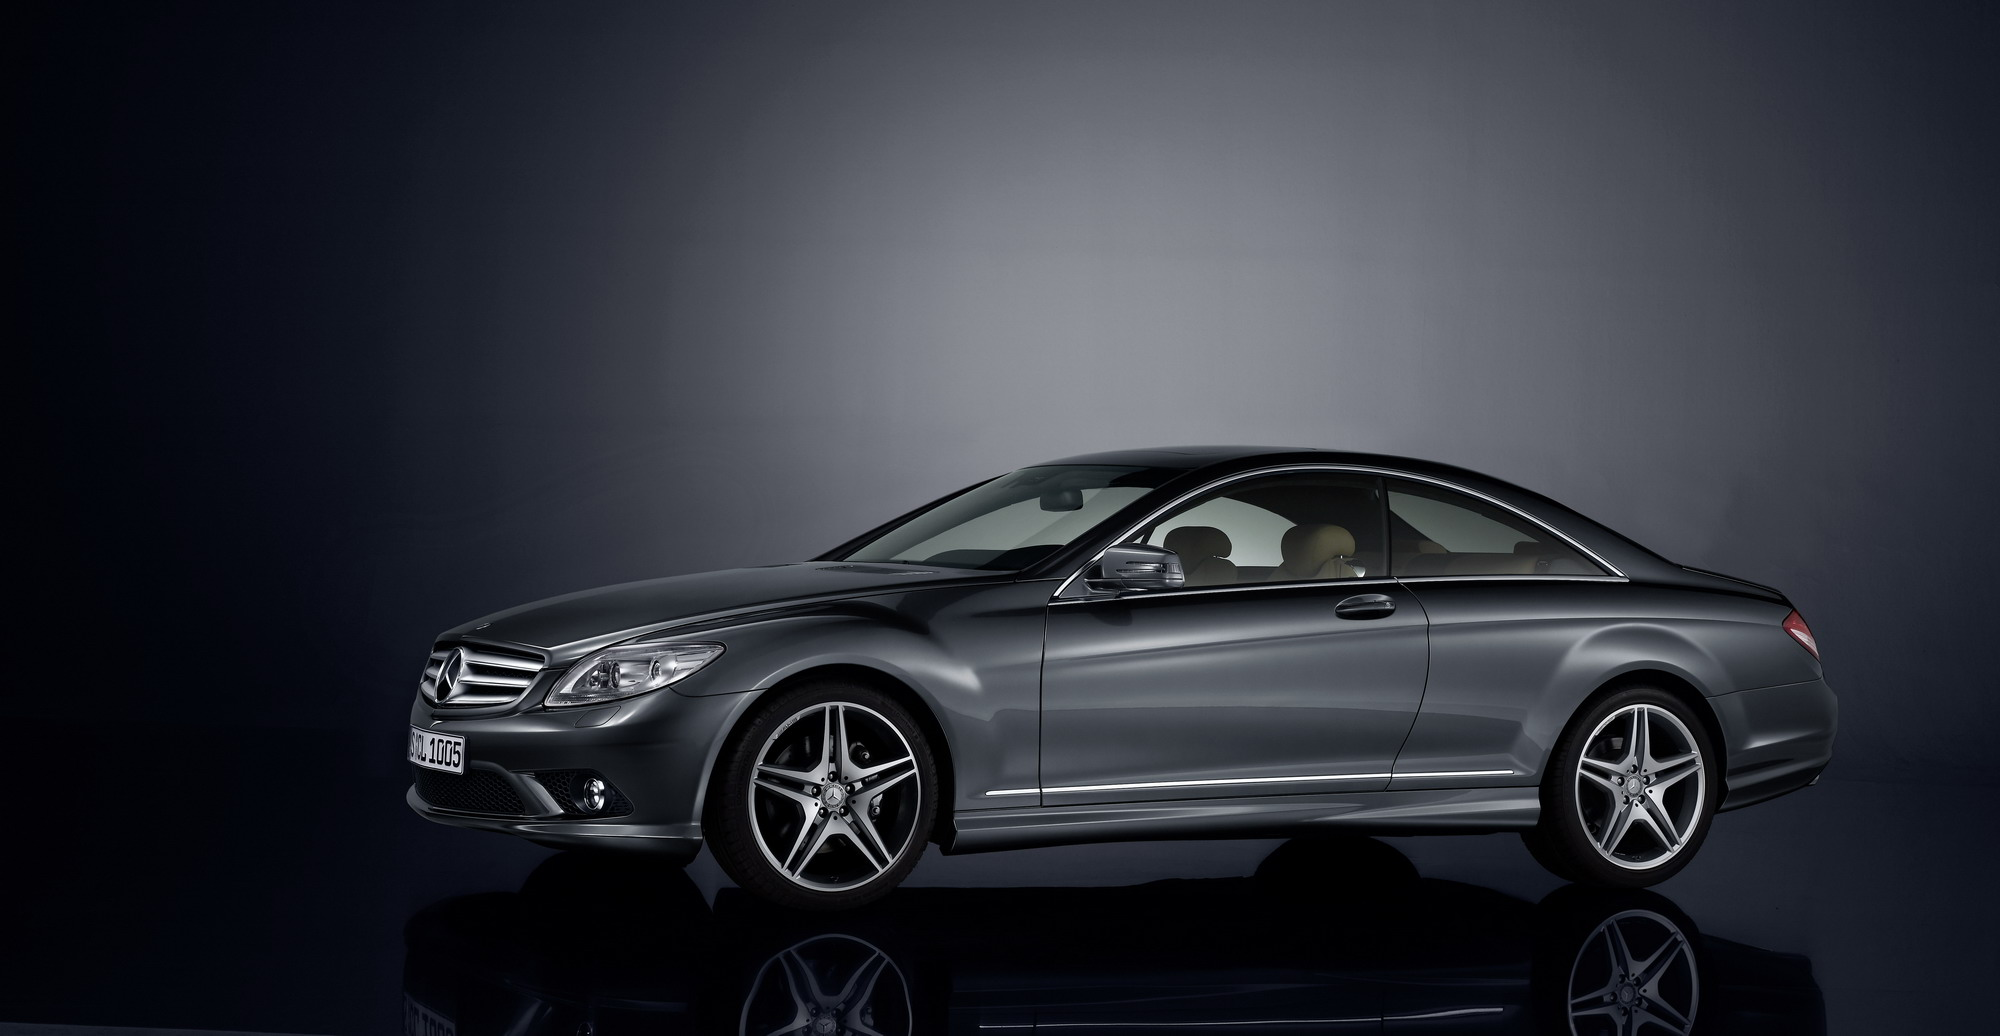 2009 mercedes cl 500 anniversary edition top speed. Black Bedroom Furniture Sets. Home Design Ideas